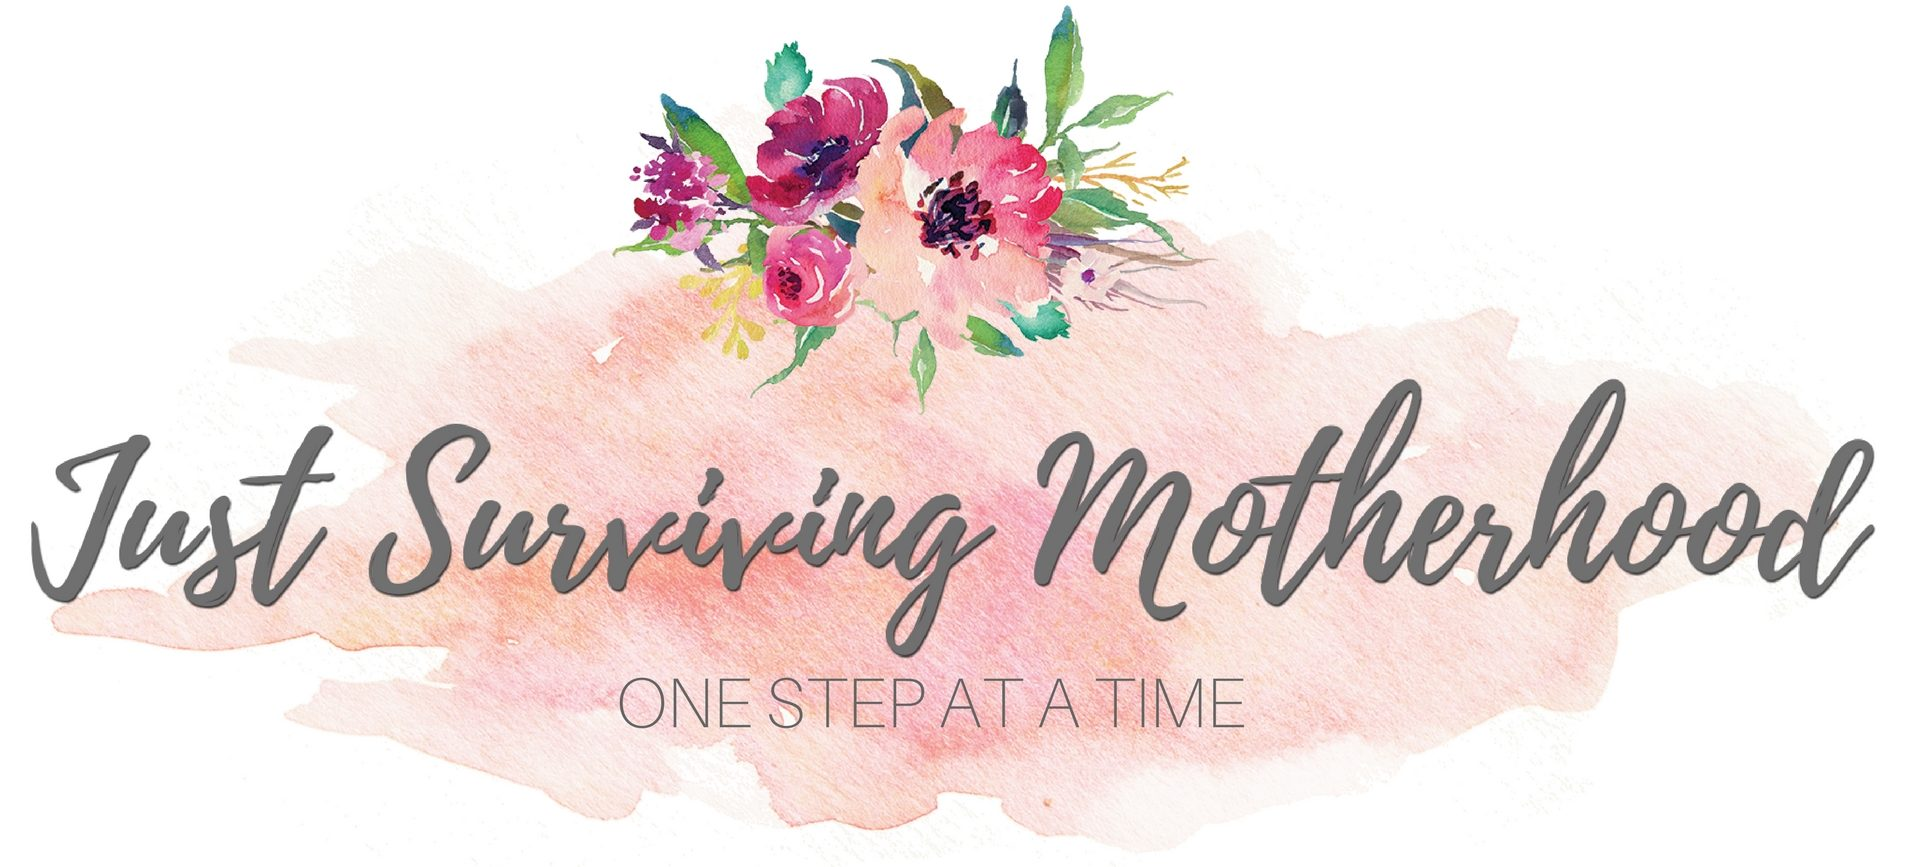 justsurvivingmotherhood.com